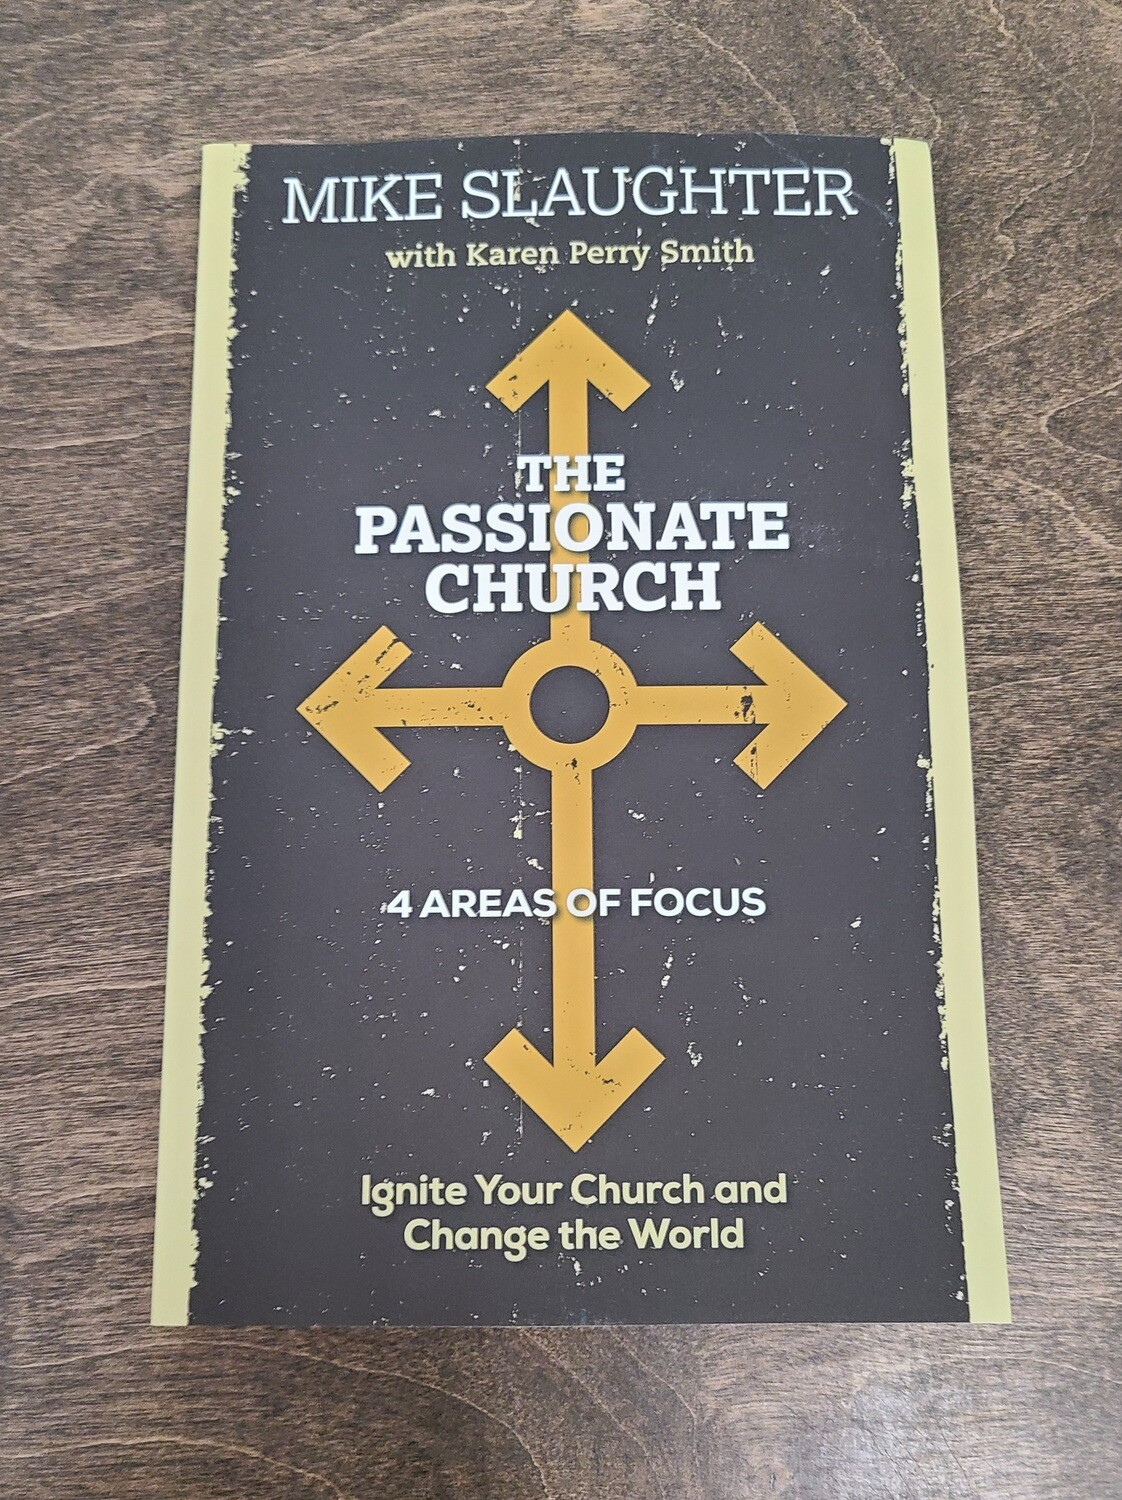 The Passionate Church: Ignite Your Church and Change the World by Mike Slaughter with Karen Perry Smith